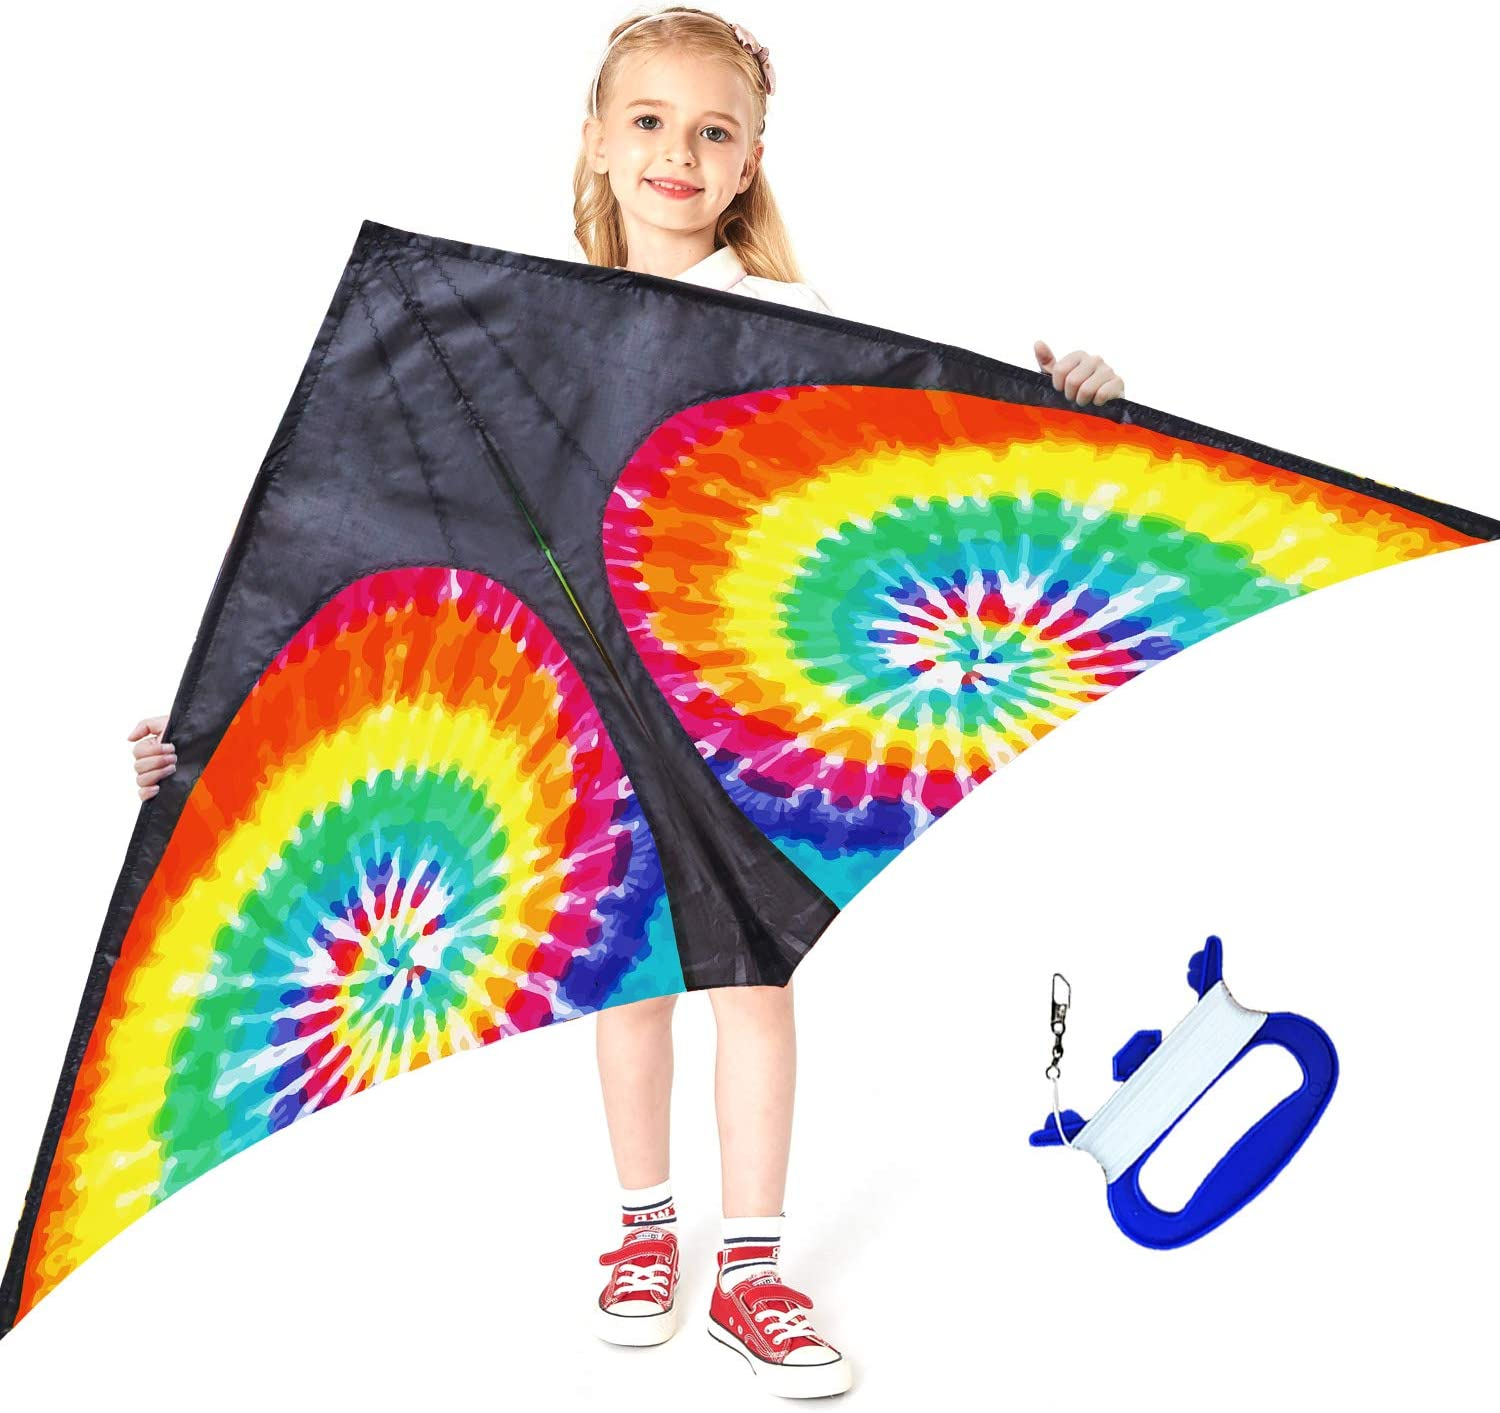 HONBO Rainbow Delta Kites Adults-Beginner kite for kids Easy Flyer Kit Line and Swivel Included Good for Outdoor Games and Summer The Beach Toys for Kids